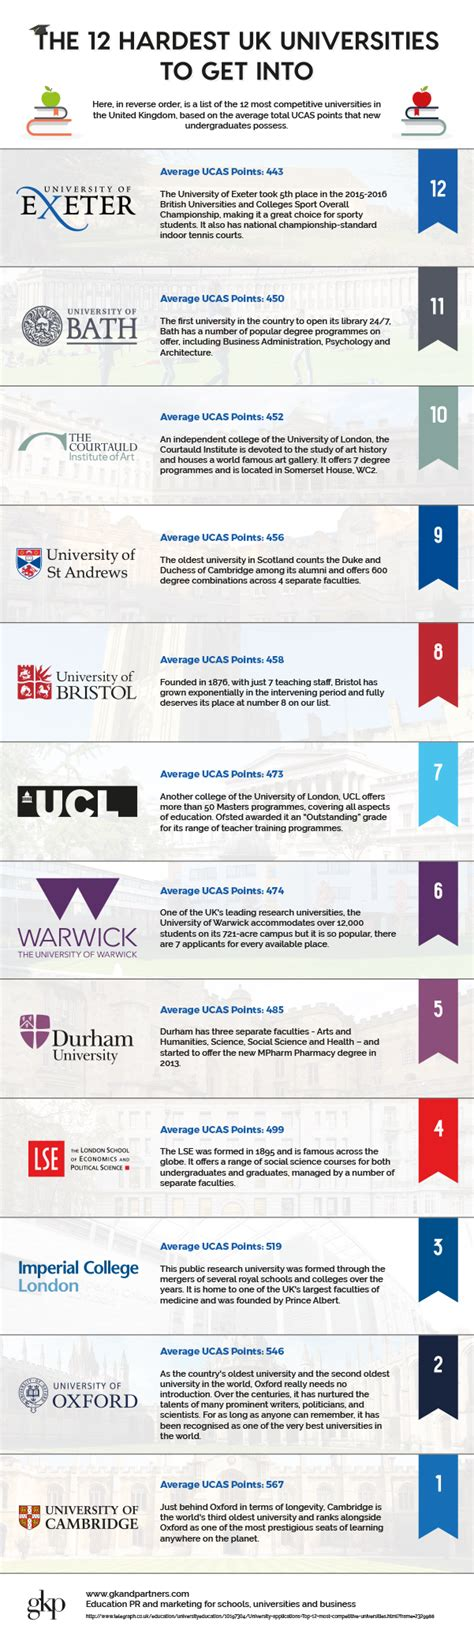 Why You Should Leave Mba Your Card Wsj by Top 12 Hardest Uk Universities To Get Into Home Business